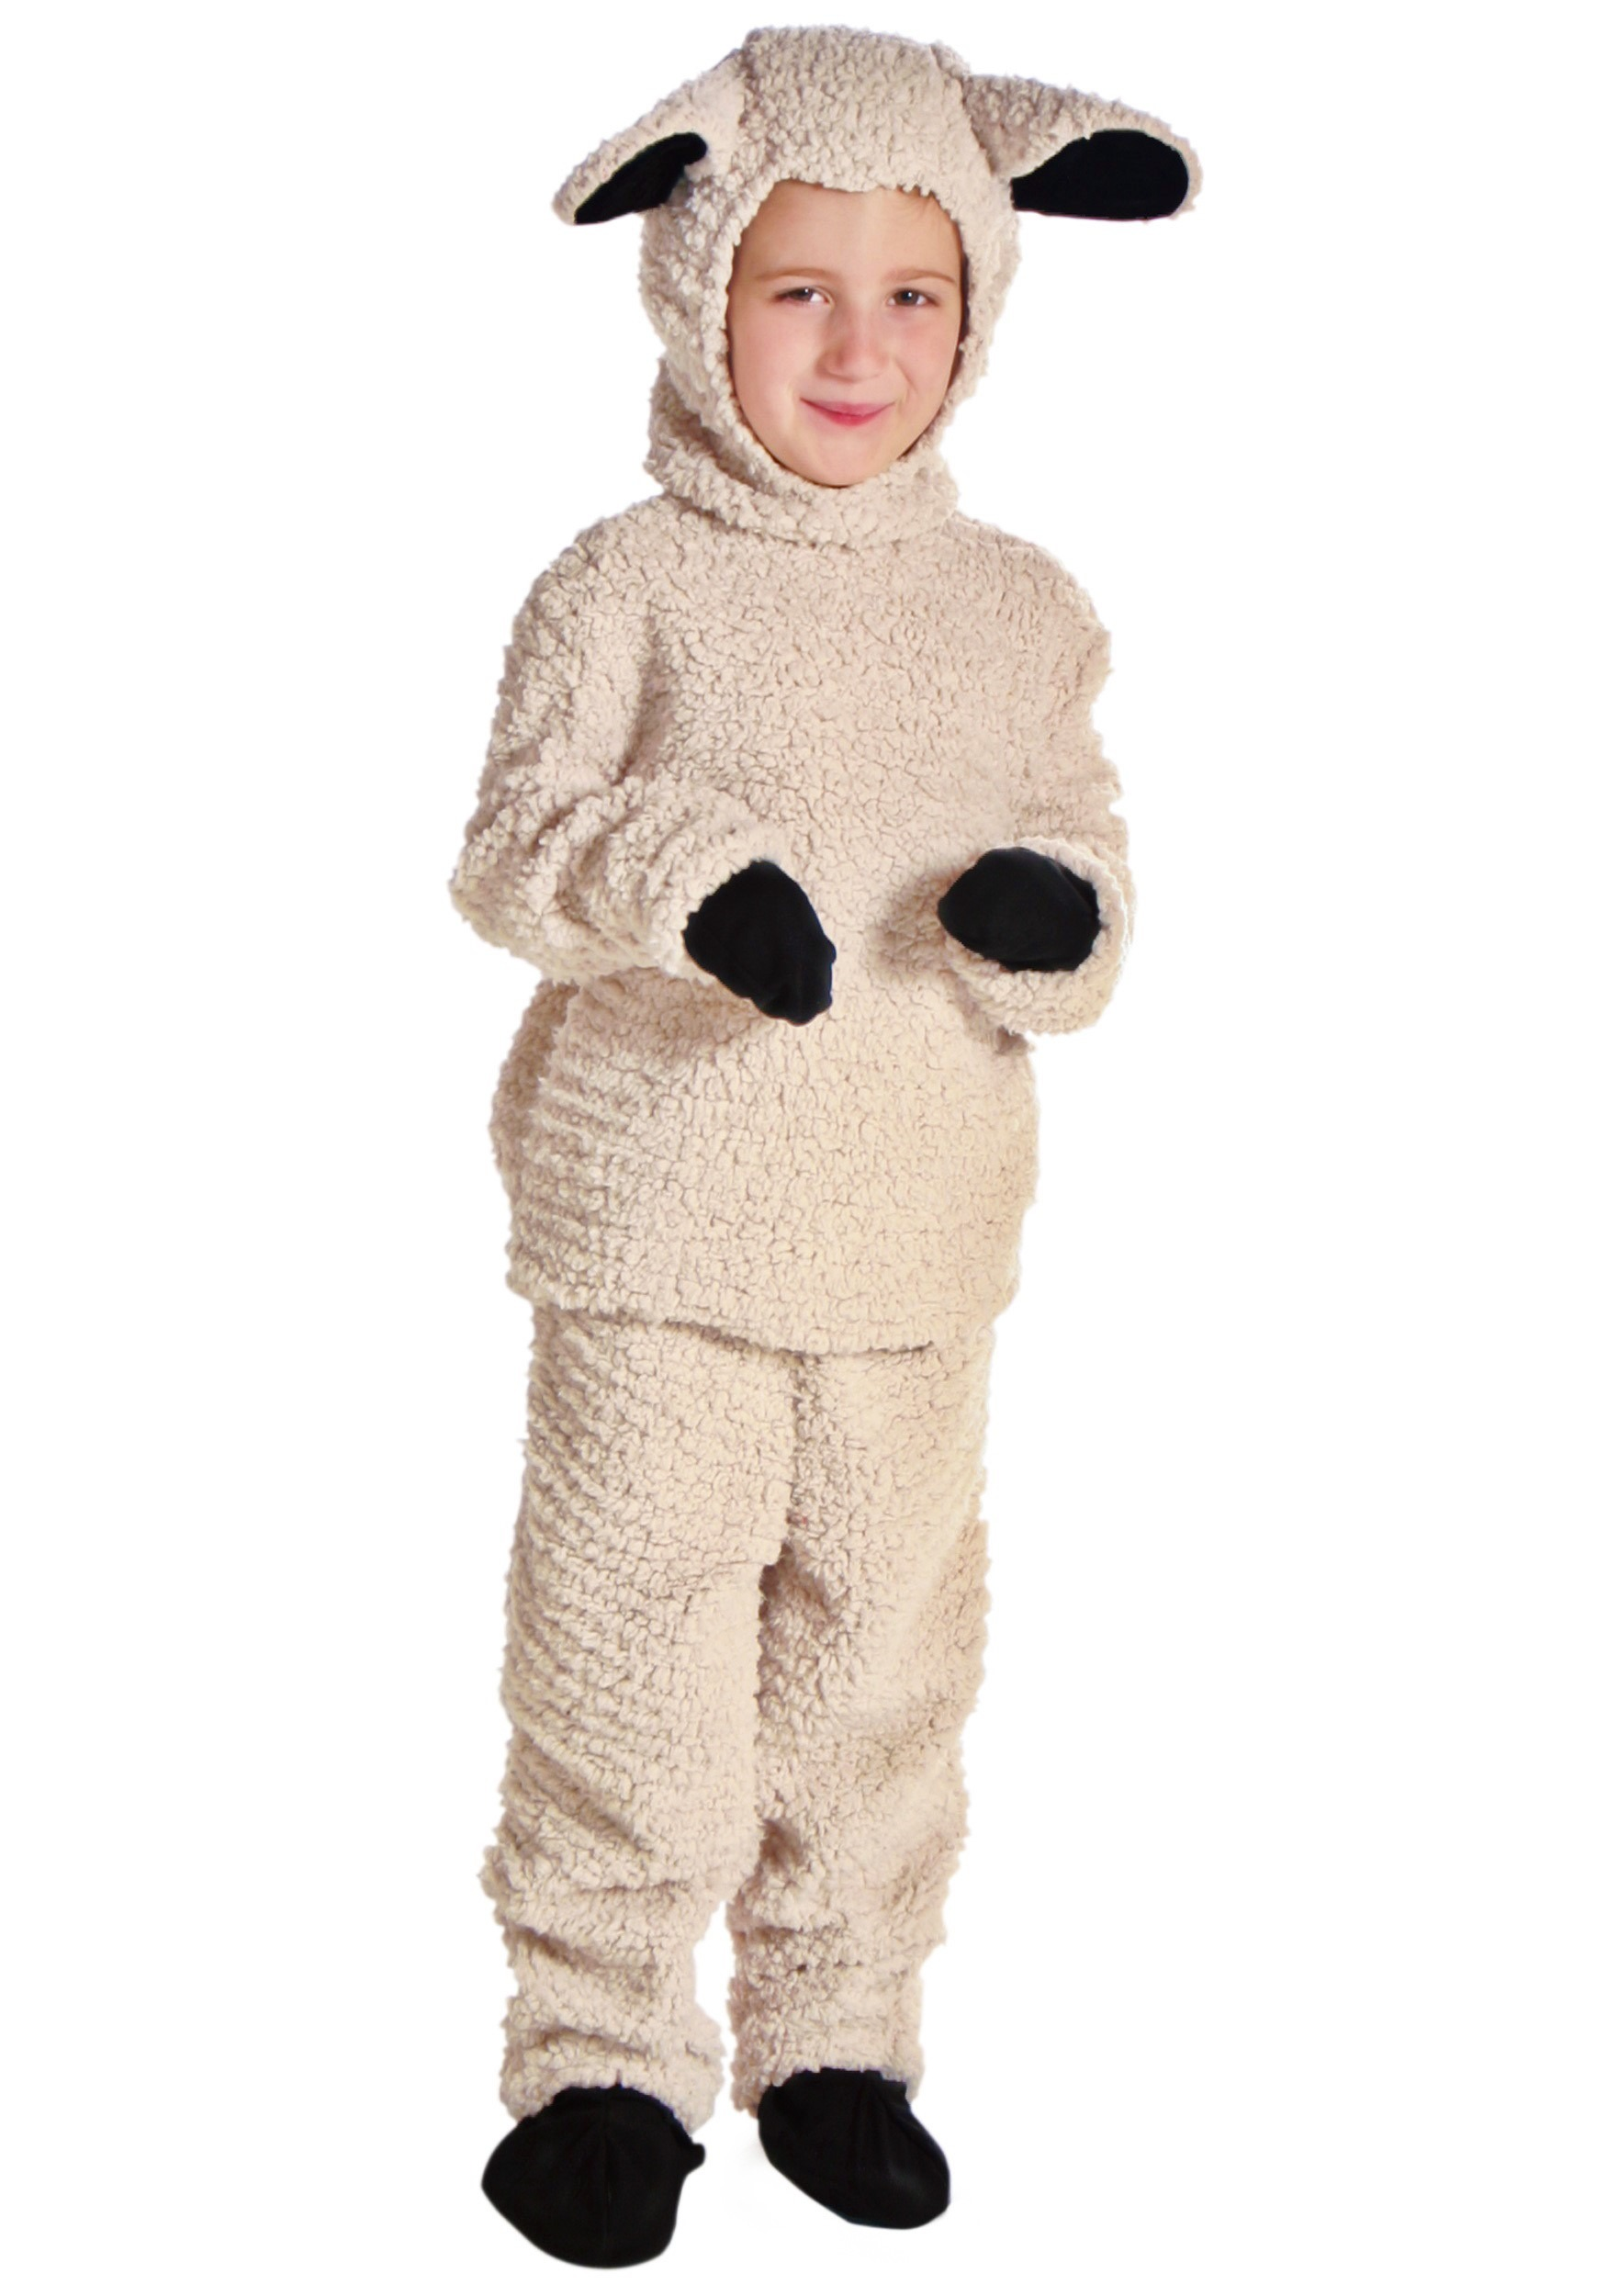 Sheep Costume for Kids | Exclusive | Made By Us Costume